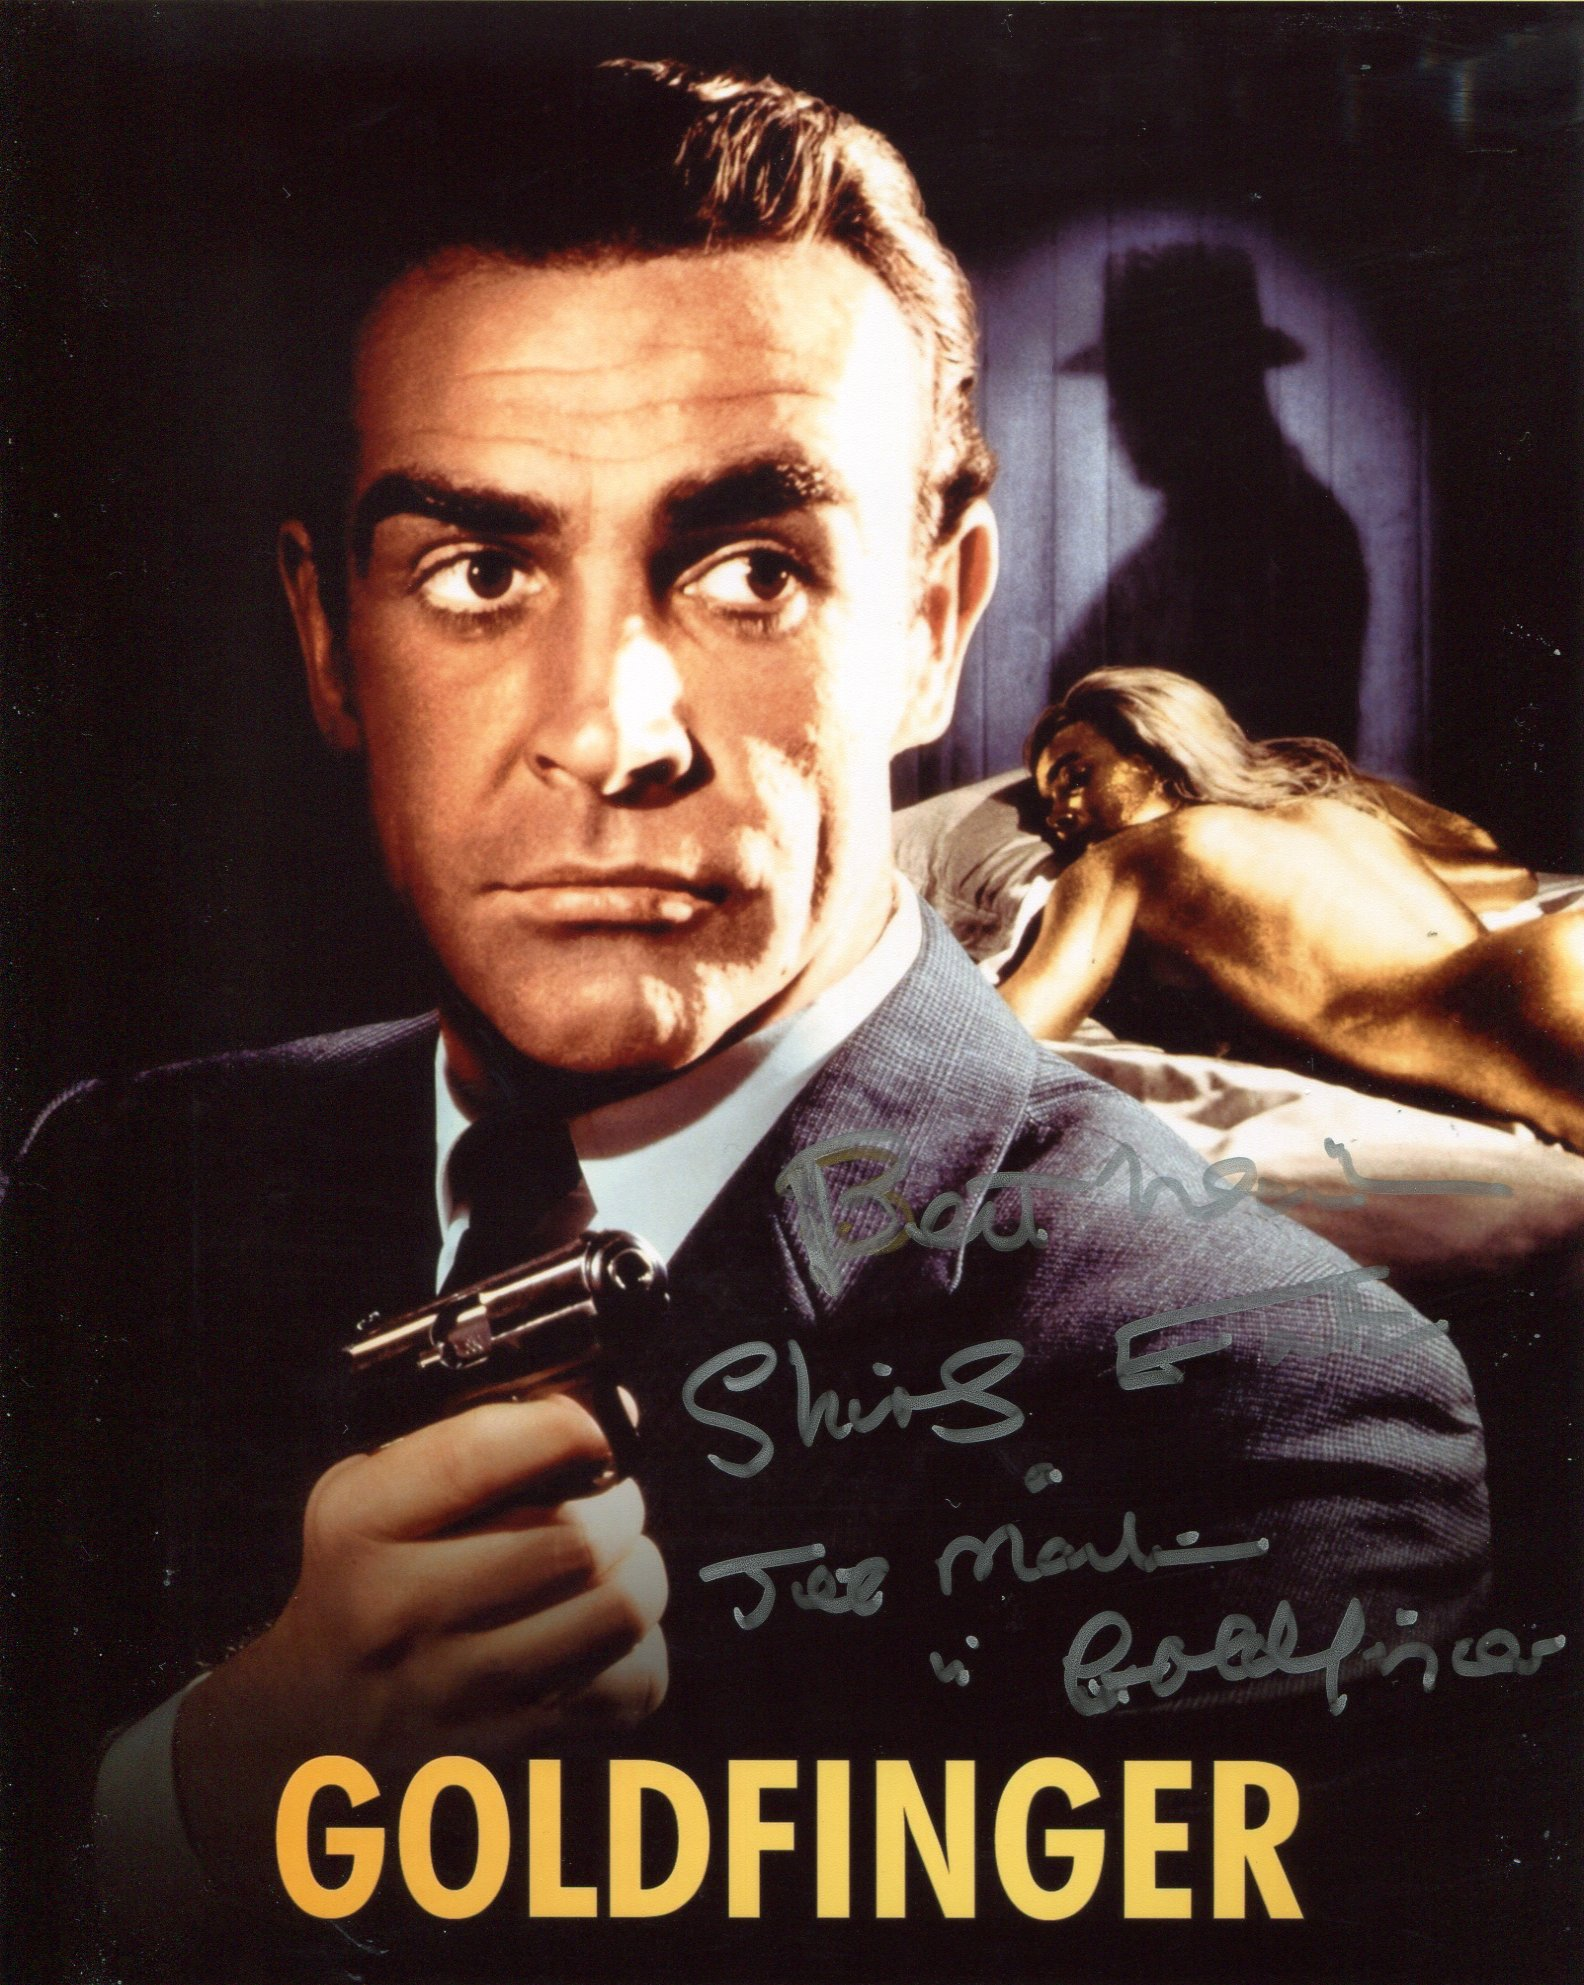 007 Bond girl Shirley Eaton signed 8x10 Goldfinger montage photo. Good condition. All autographs